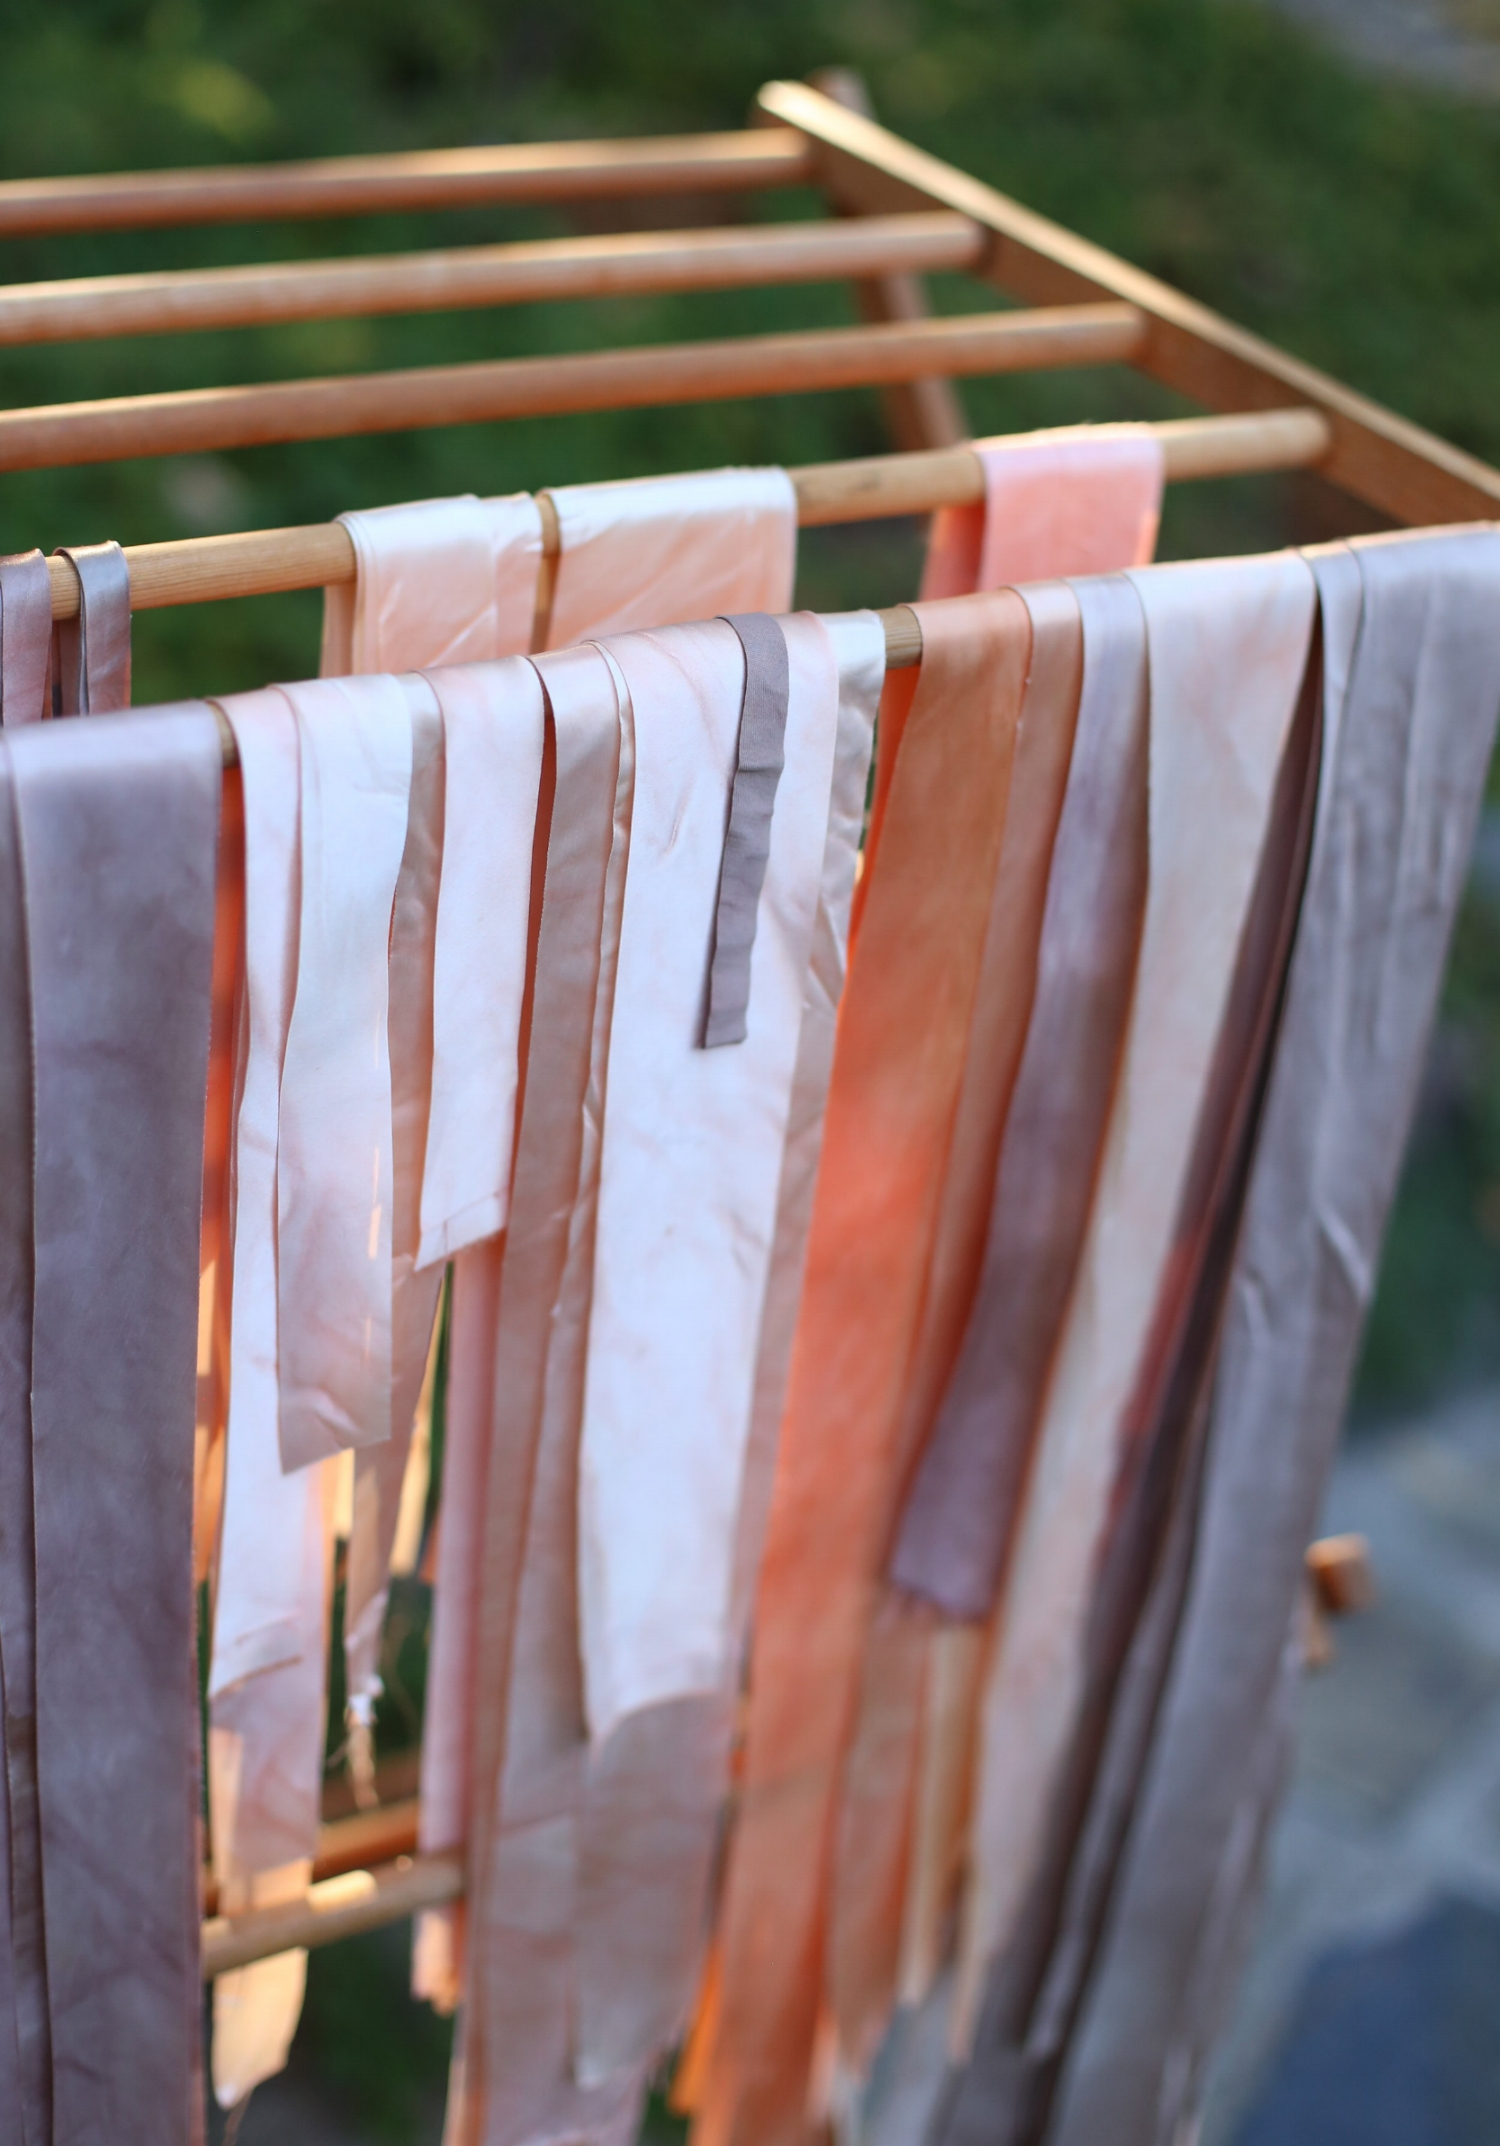 - Next I cut them into long streamers with a rotary cutter. Besides having sentimental value, I knew I couldn't have found ribbons in these colors. I liked having so many subtle variations, too.